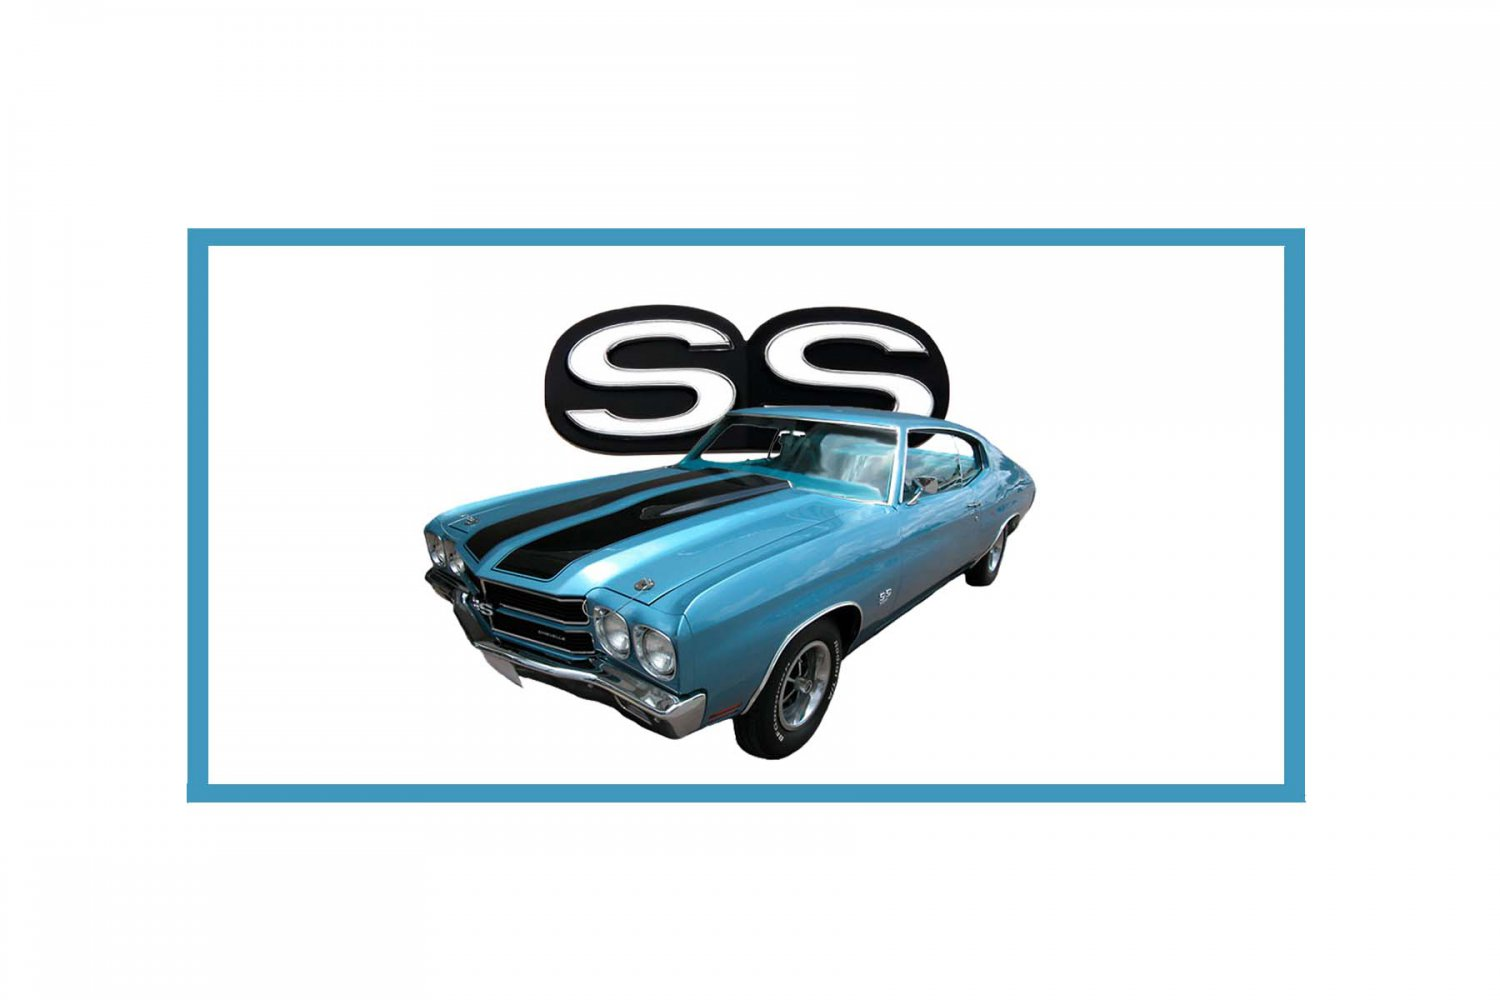 NEW 1970 Blue Chevy Chevelle SS w/ SS Logo License Plate FREE SHIPPING!